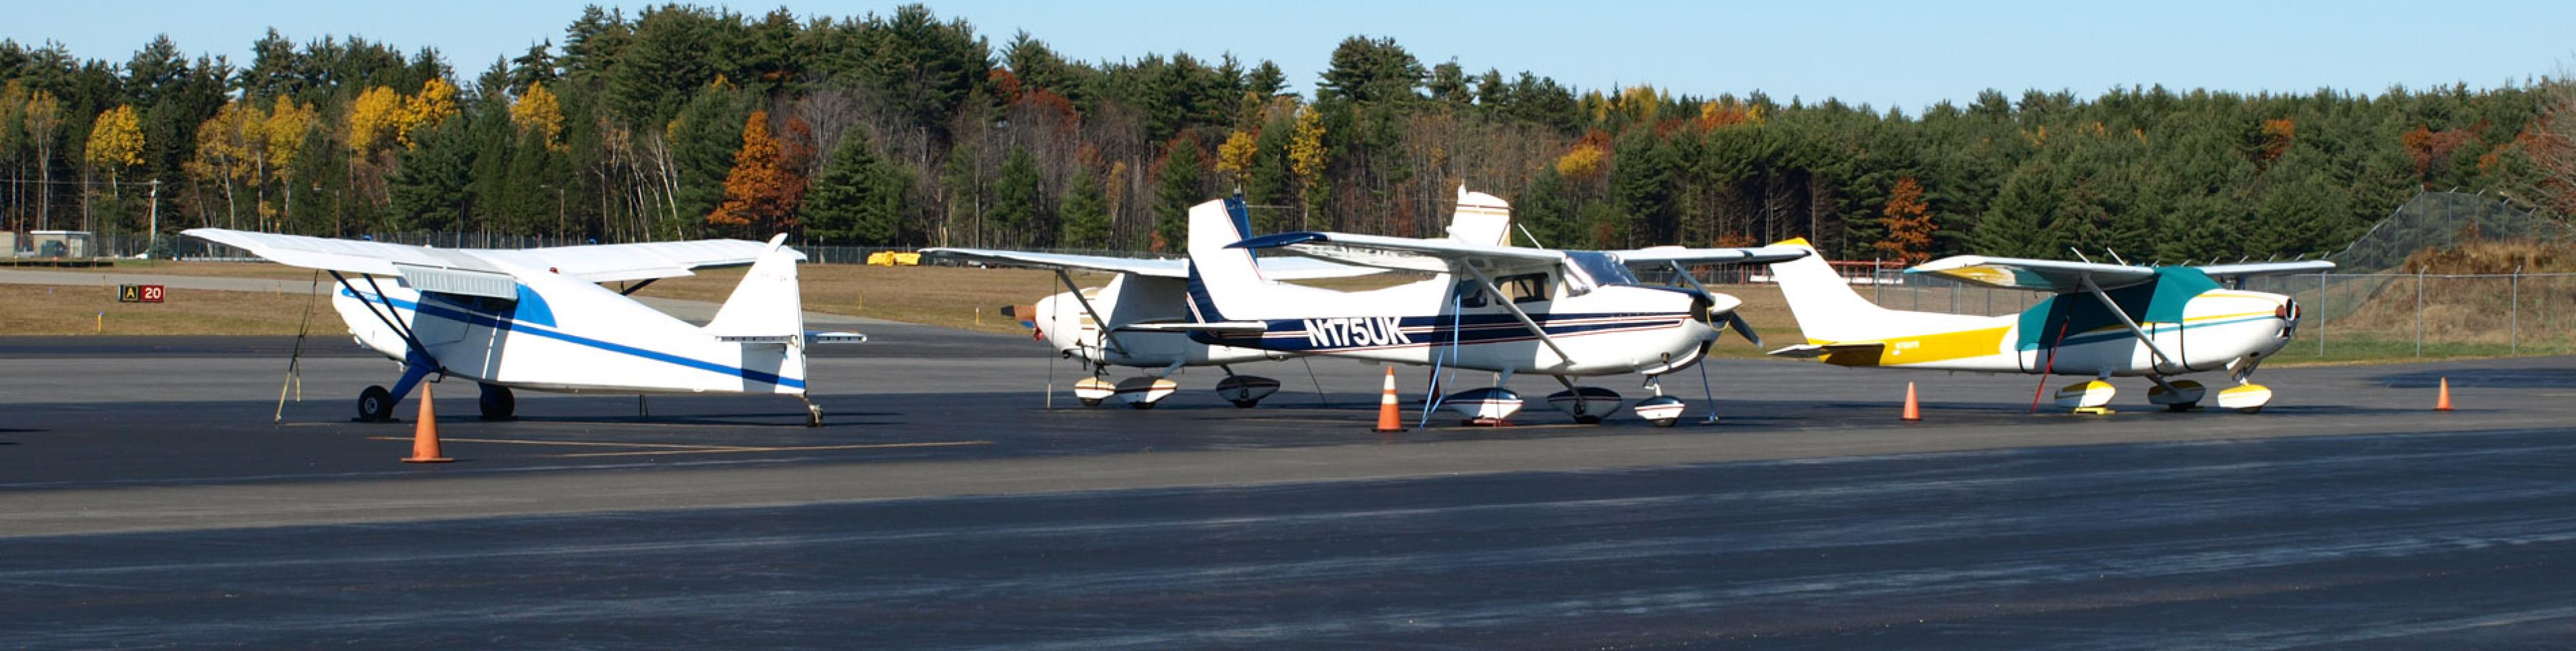 keene dilant hopkins airport